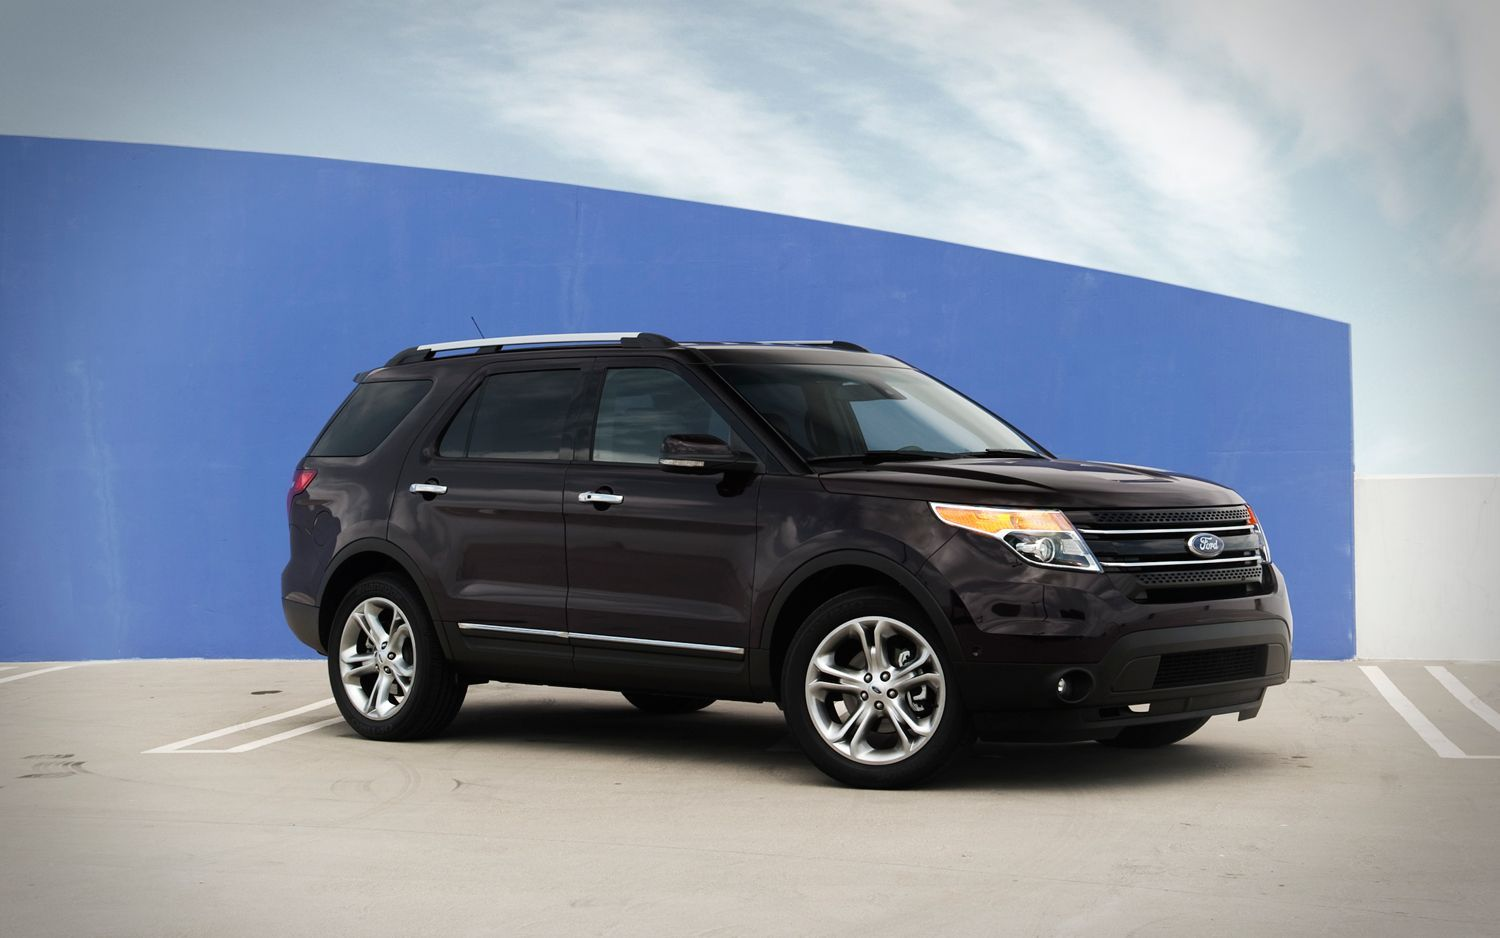 2013 Ford Explorer Limited 4wd First Test 2013 Ford Explorer 2013 Ford Explorer Limited Ford Explorer